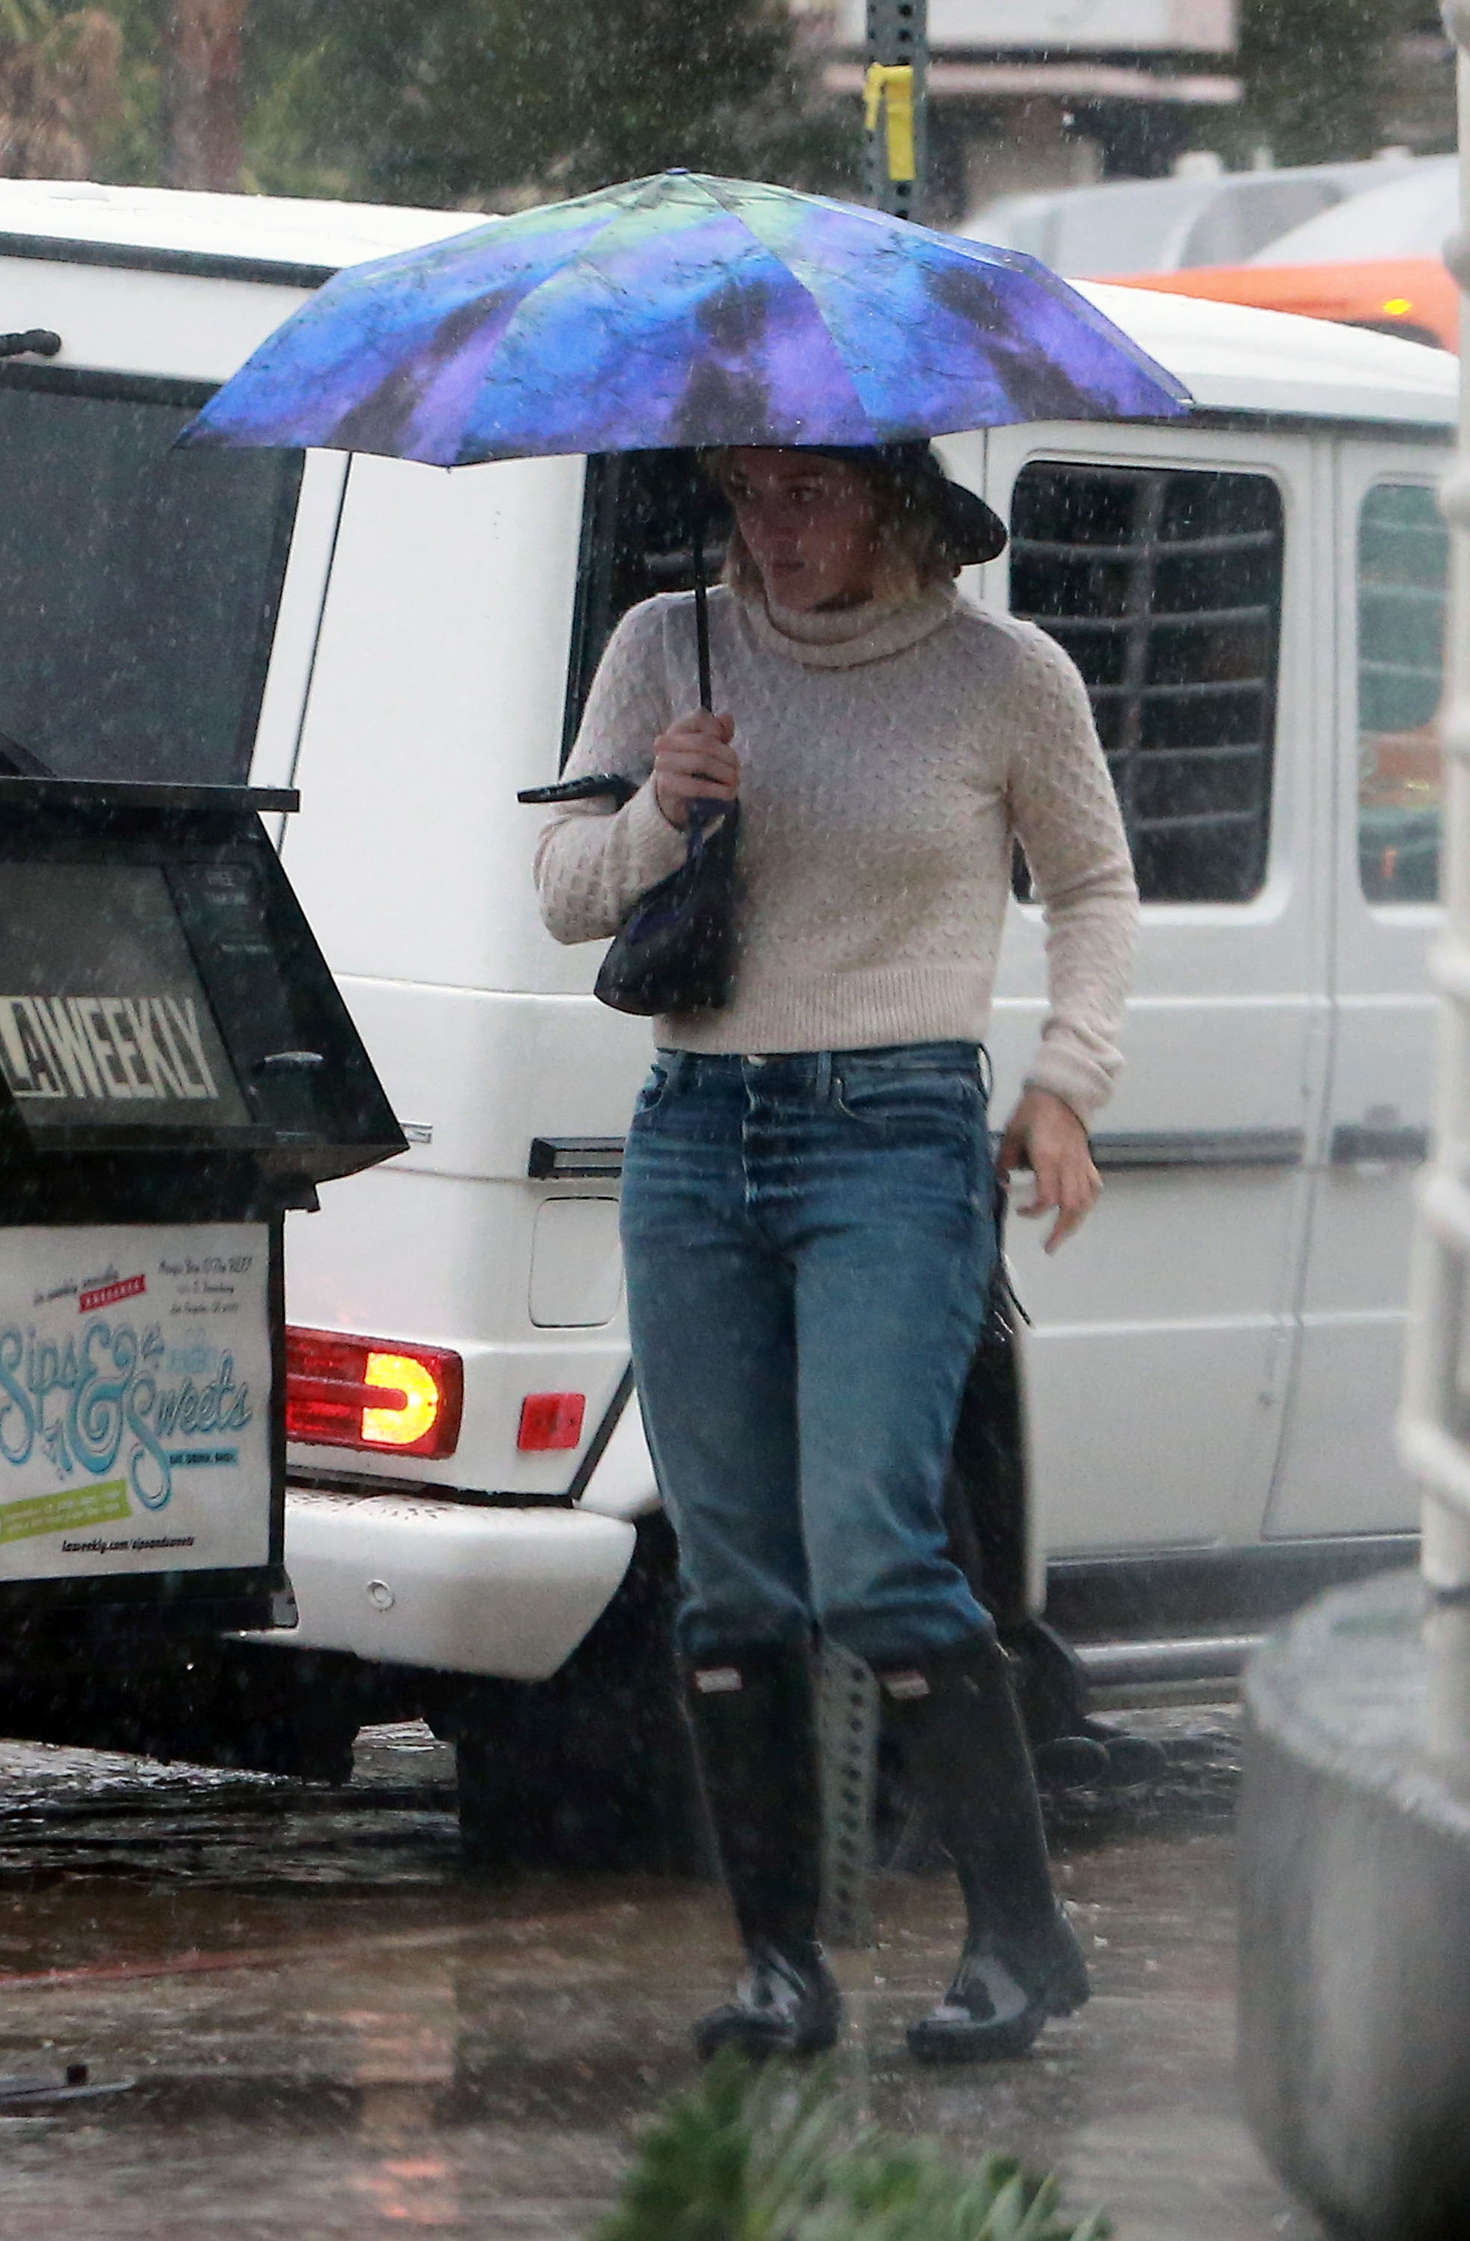 Hilary Duff 2016 : Hilary Duff in Jeans out on a rainy day -18